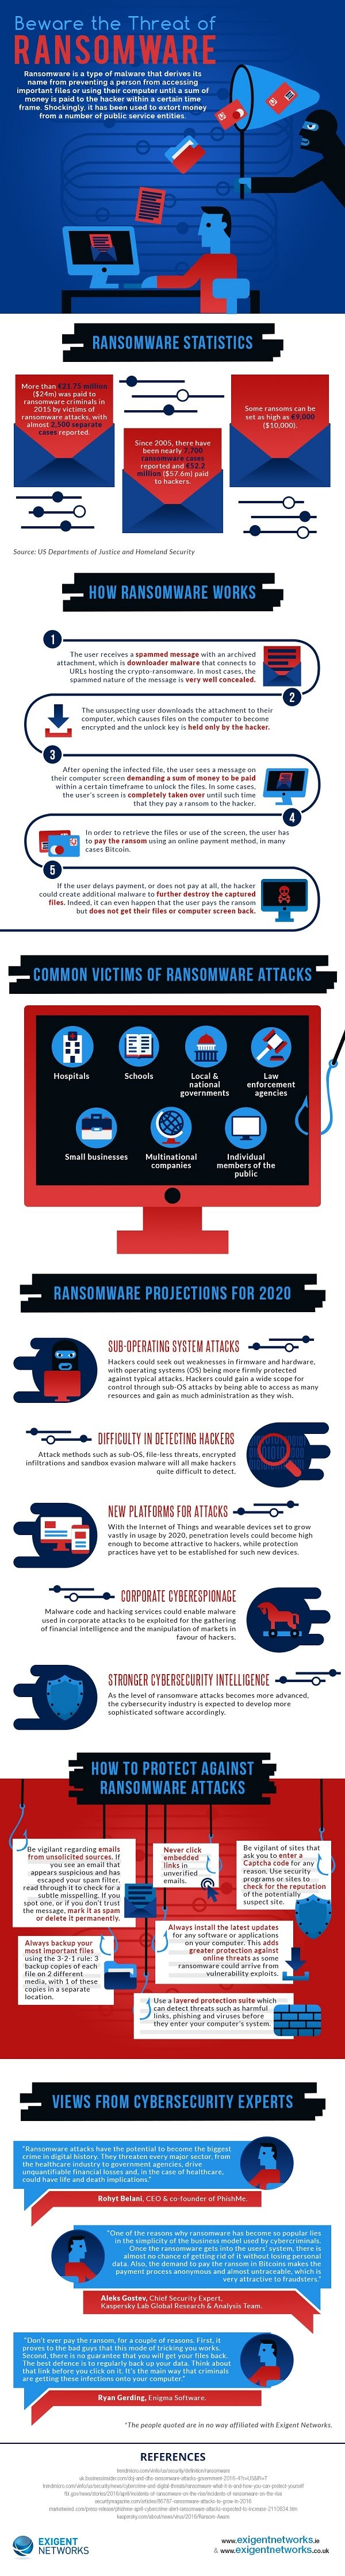 Beware the Threat of Ransomware - #Infographic